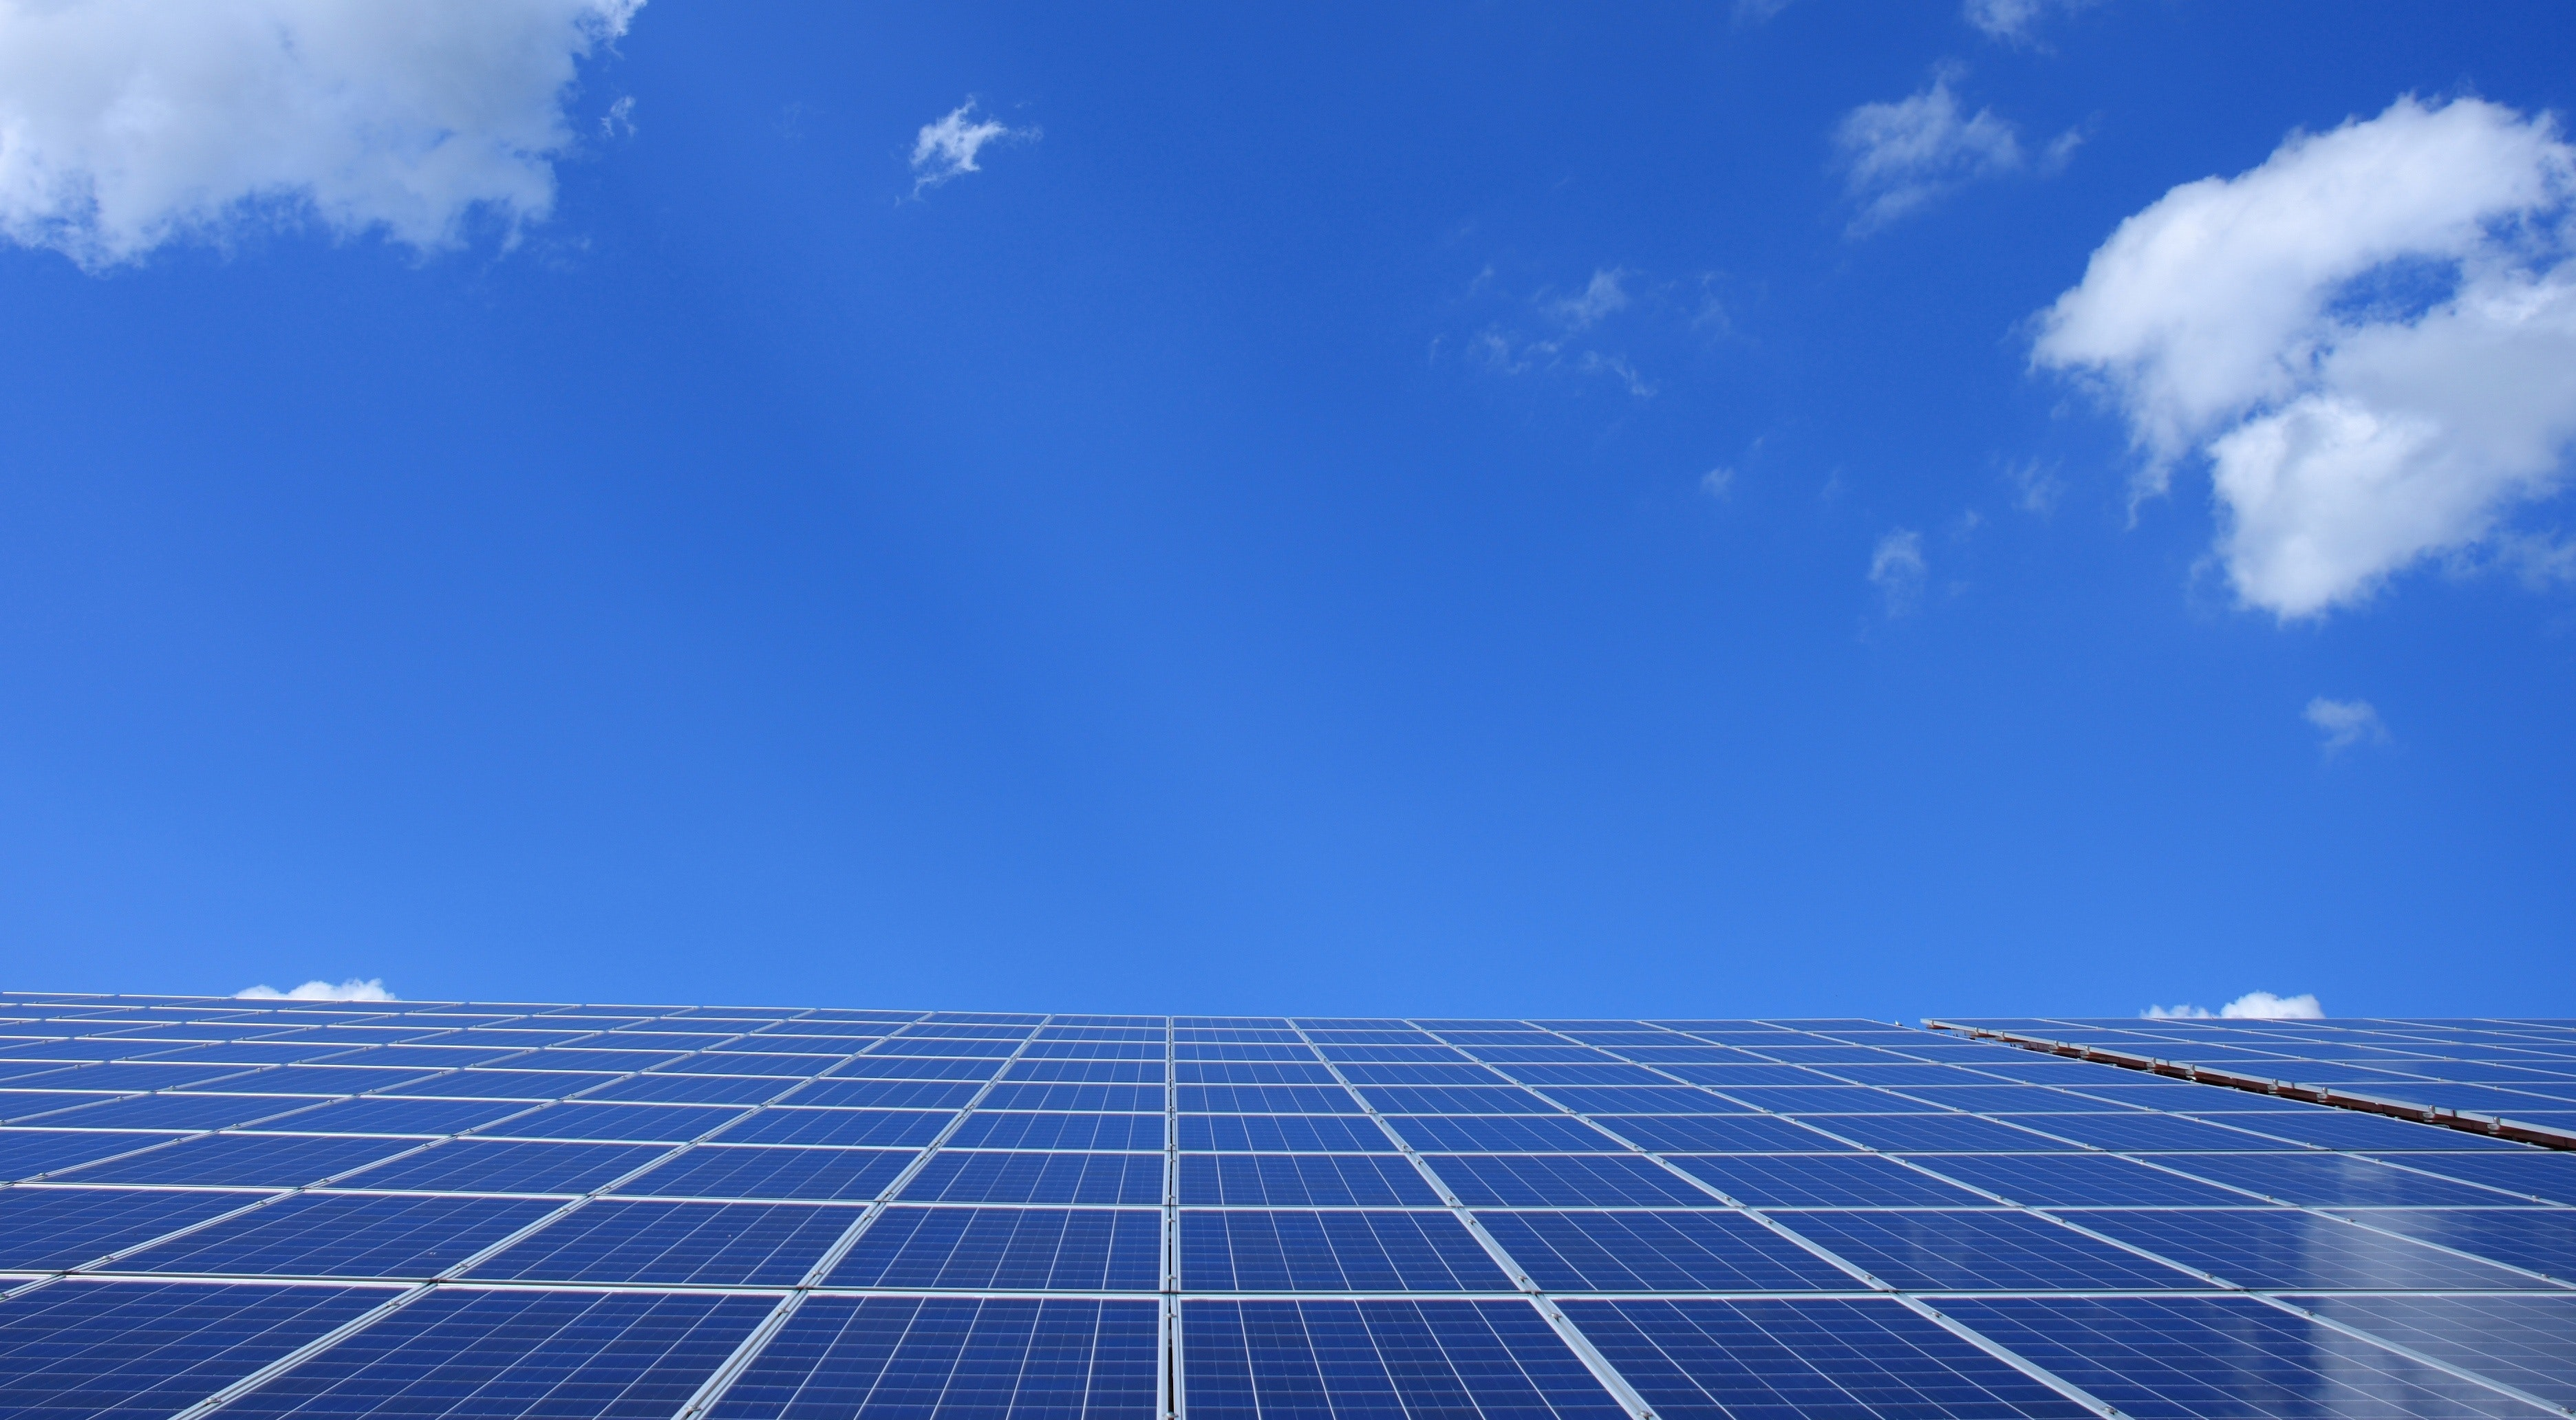 Blue Solar Panels Under Sunny Sky 183 Free Stock Photo